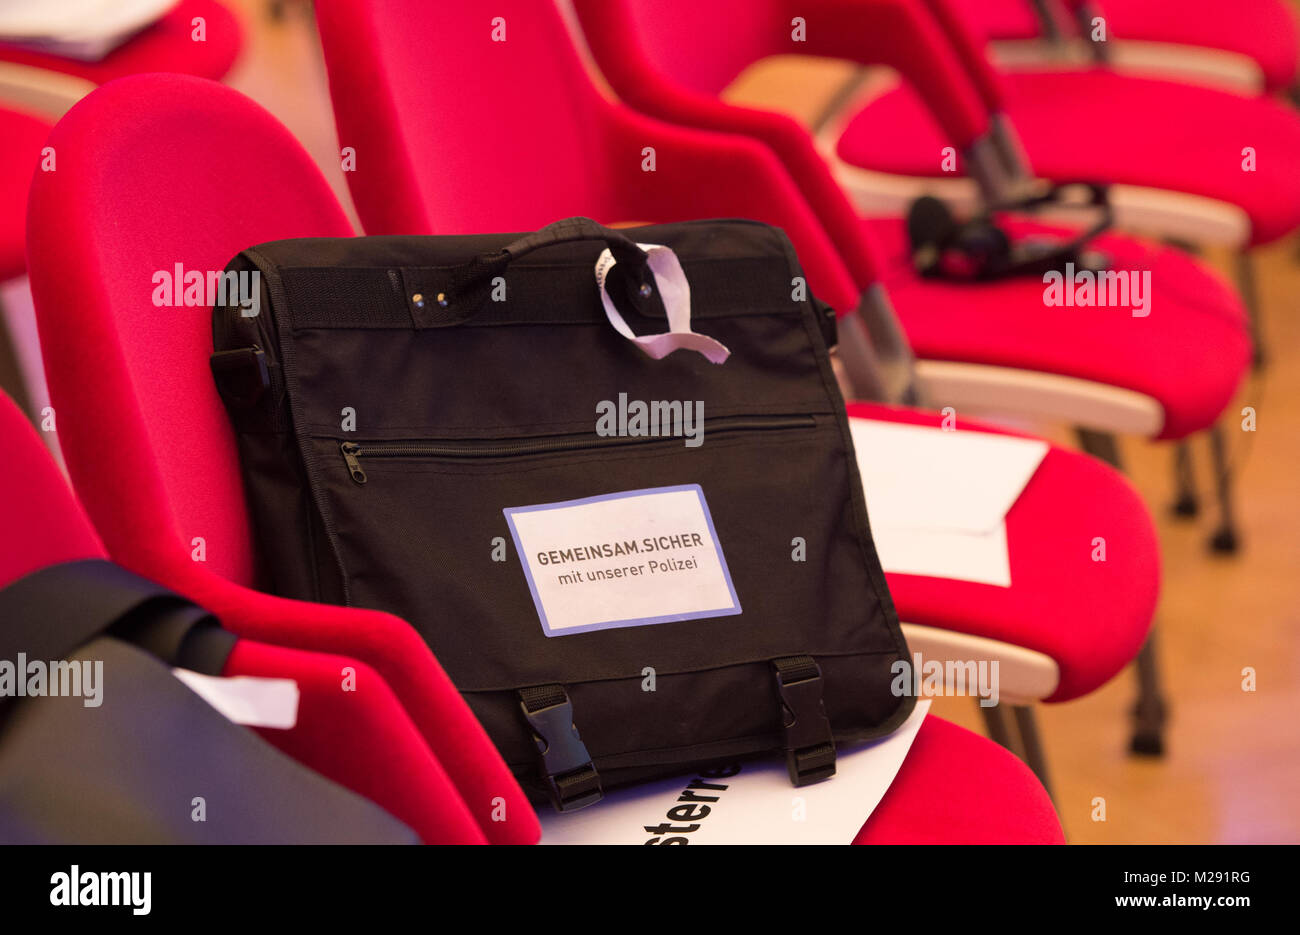 Sicher Safe Berlin Germany 6th February 2018 A Bag Which Reads Gemeinsam